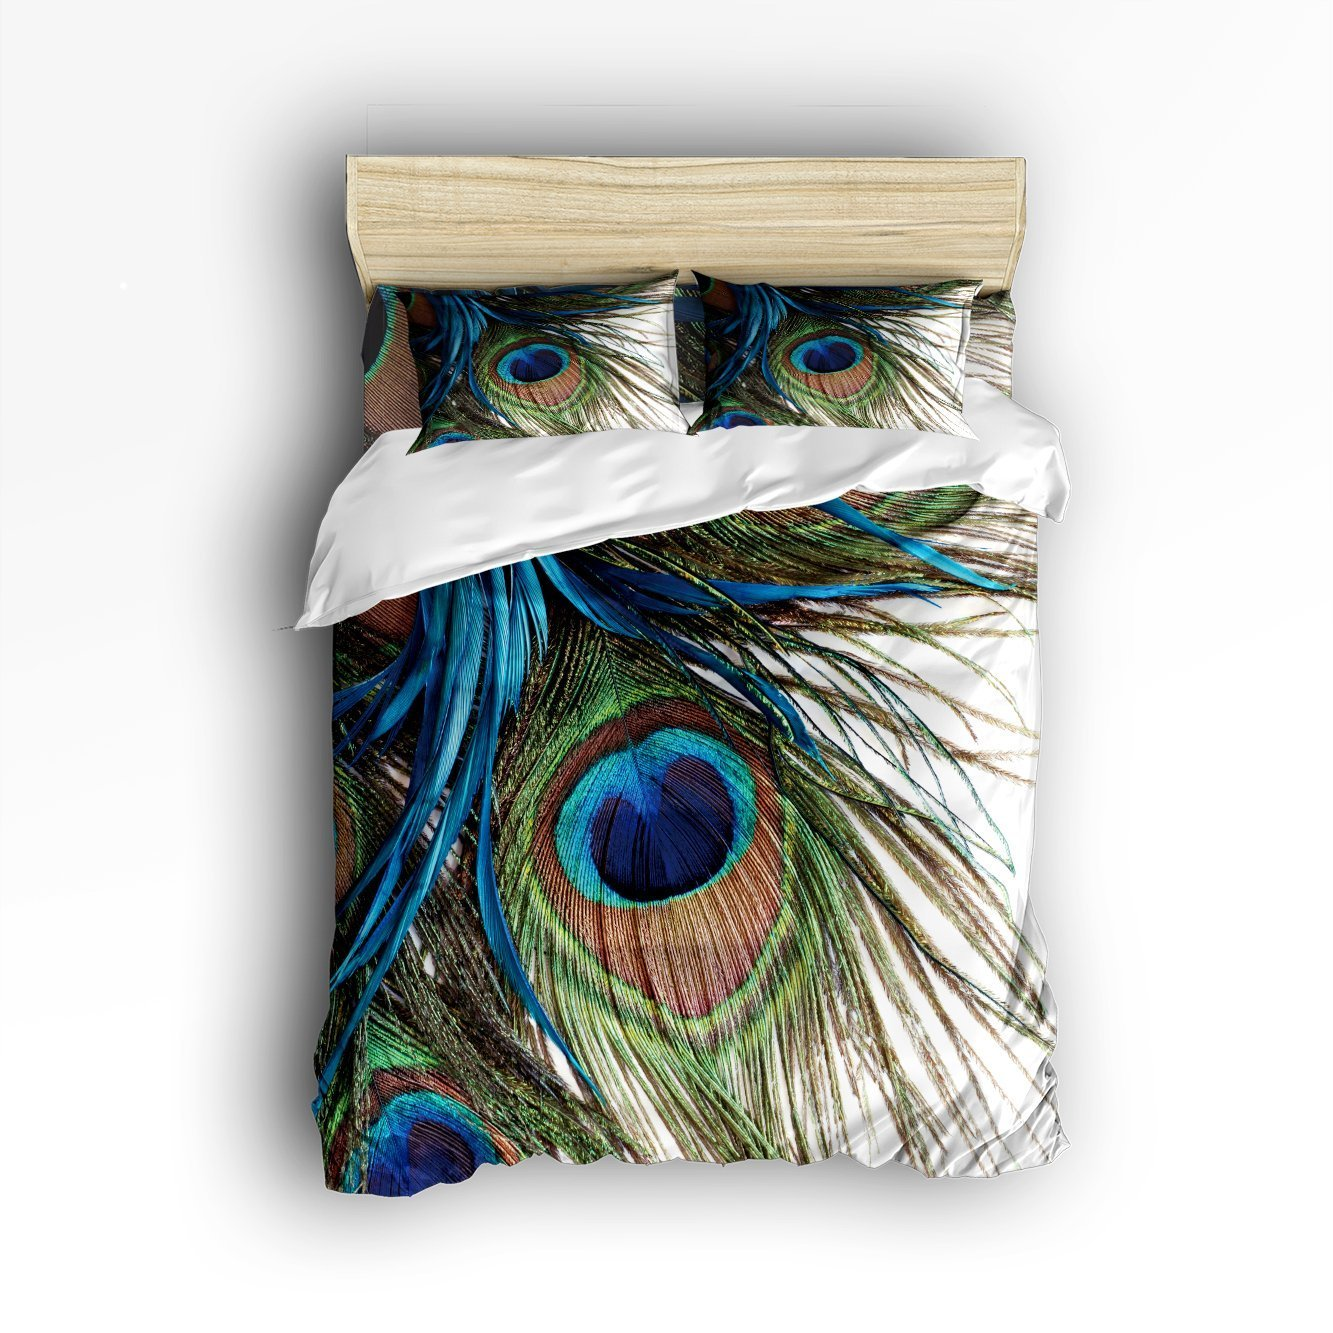 CHARMHOME Peacock Feather Eye Print Home Comforter Bedding Sets Duvet Cover Sets Bedspread for Adult Kids,Flat Sheet Shams Set 4Pieces,4 Pcs Queen Size for Kids Teenage Teens King Size